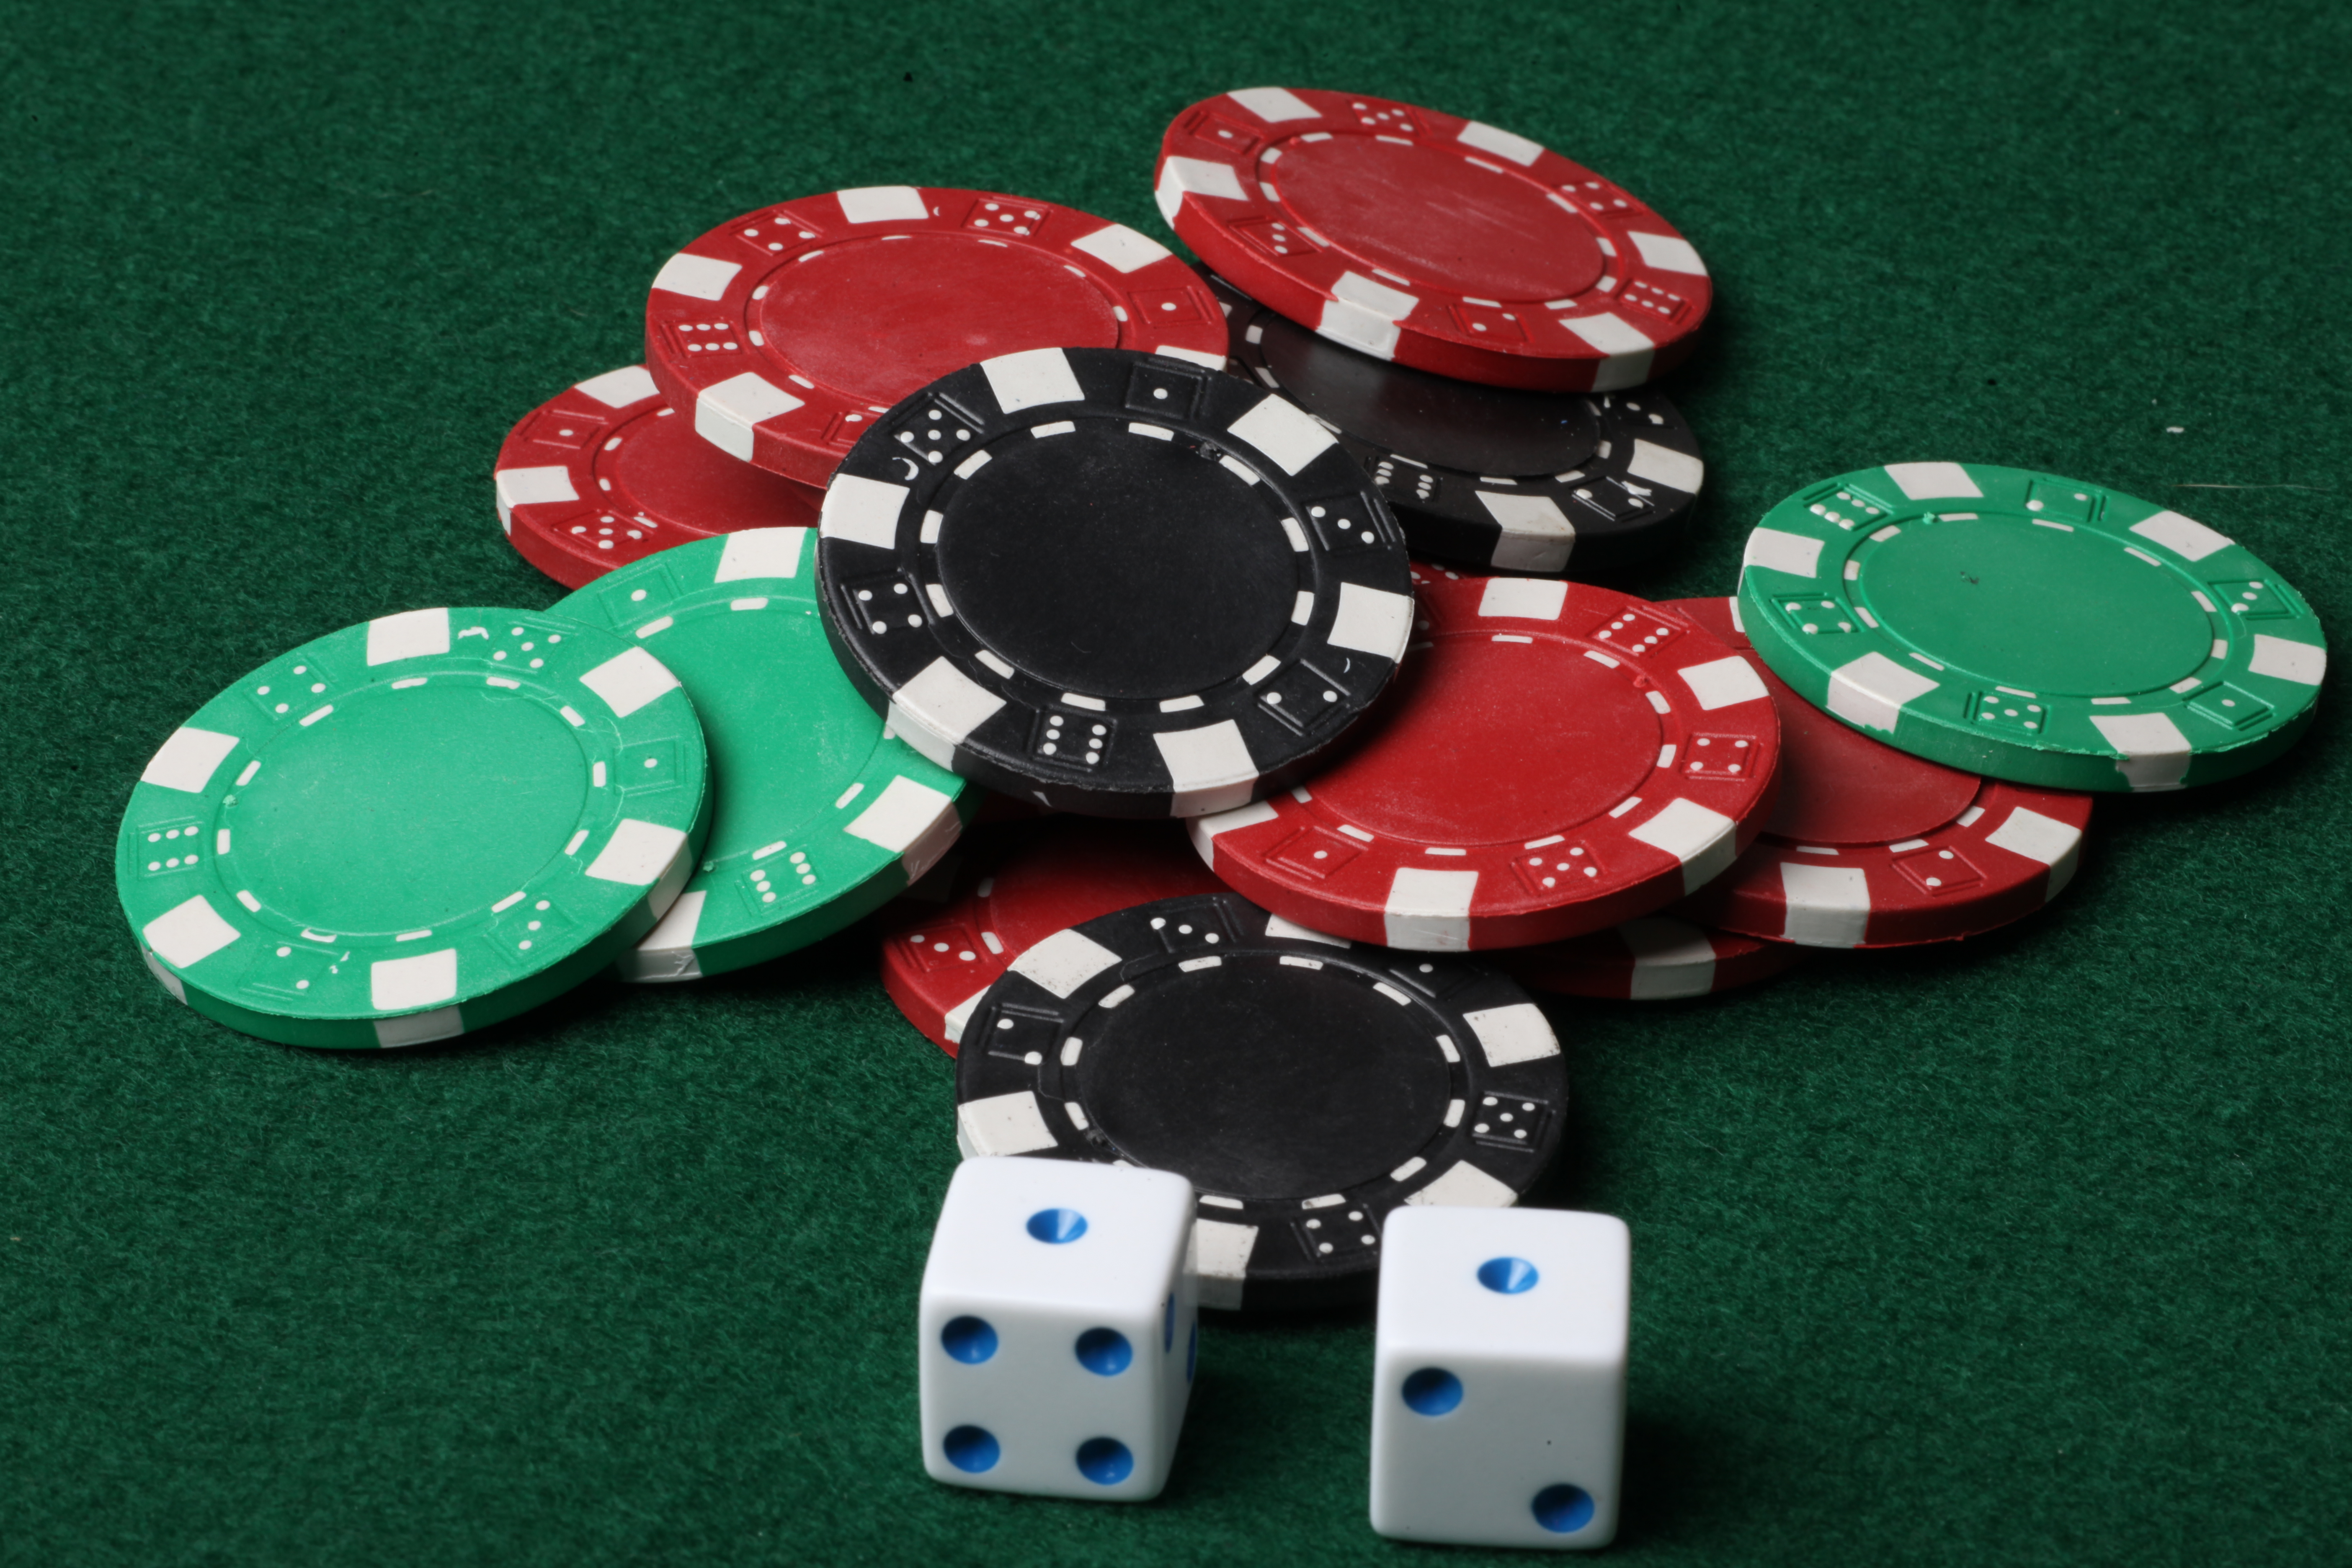 Poker chips and dice photo